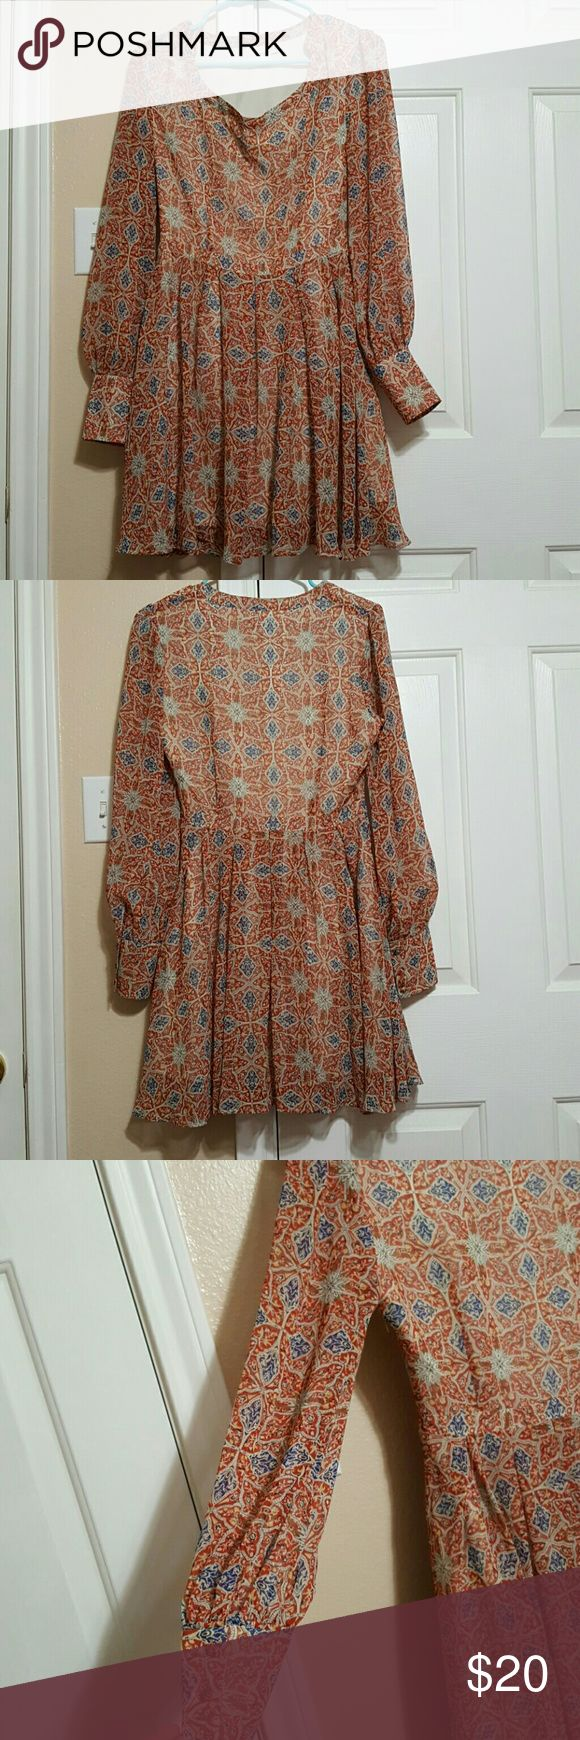 Asos Petite Dress size 6 Asos Petites size 6 dress. Long-sleeved and very lightweight and great for spring. Fully lined  with sheer sleeves. Side zipper. 100% polyester. Machine wash inside out with like colors. From a smoke-free environment. All sales final. Make an offer! ASOS Petite Dresses Long Sleeve